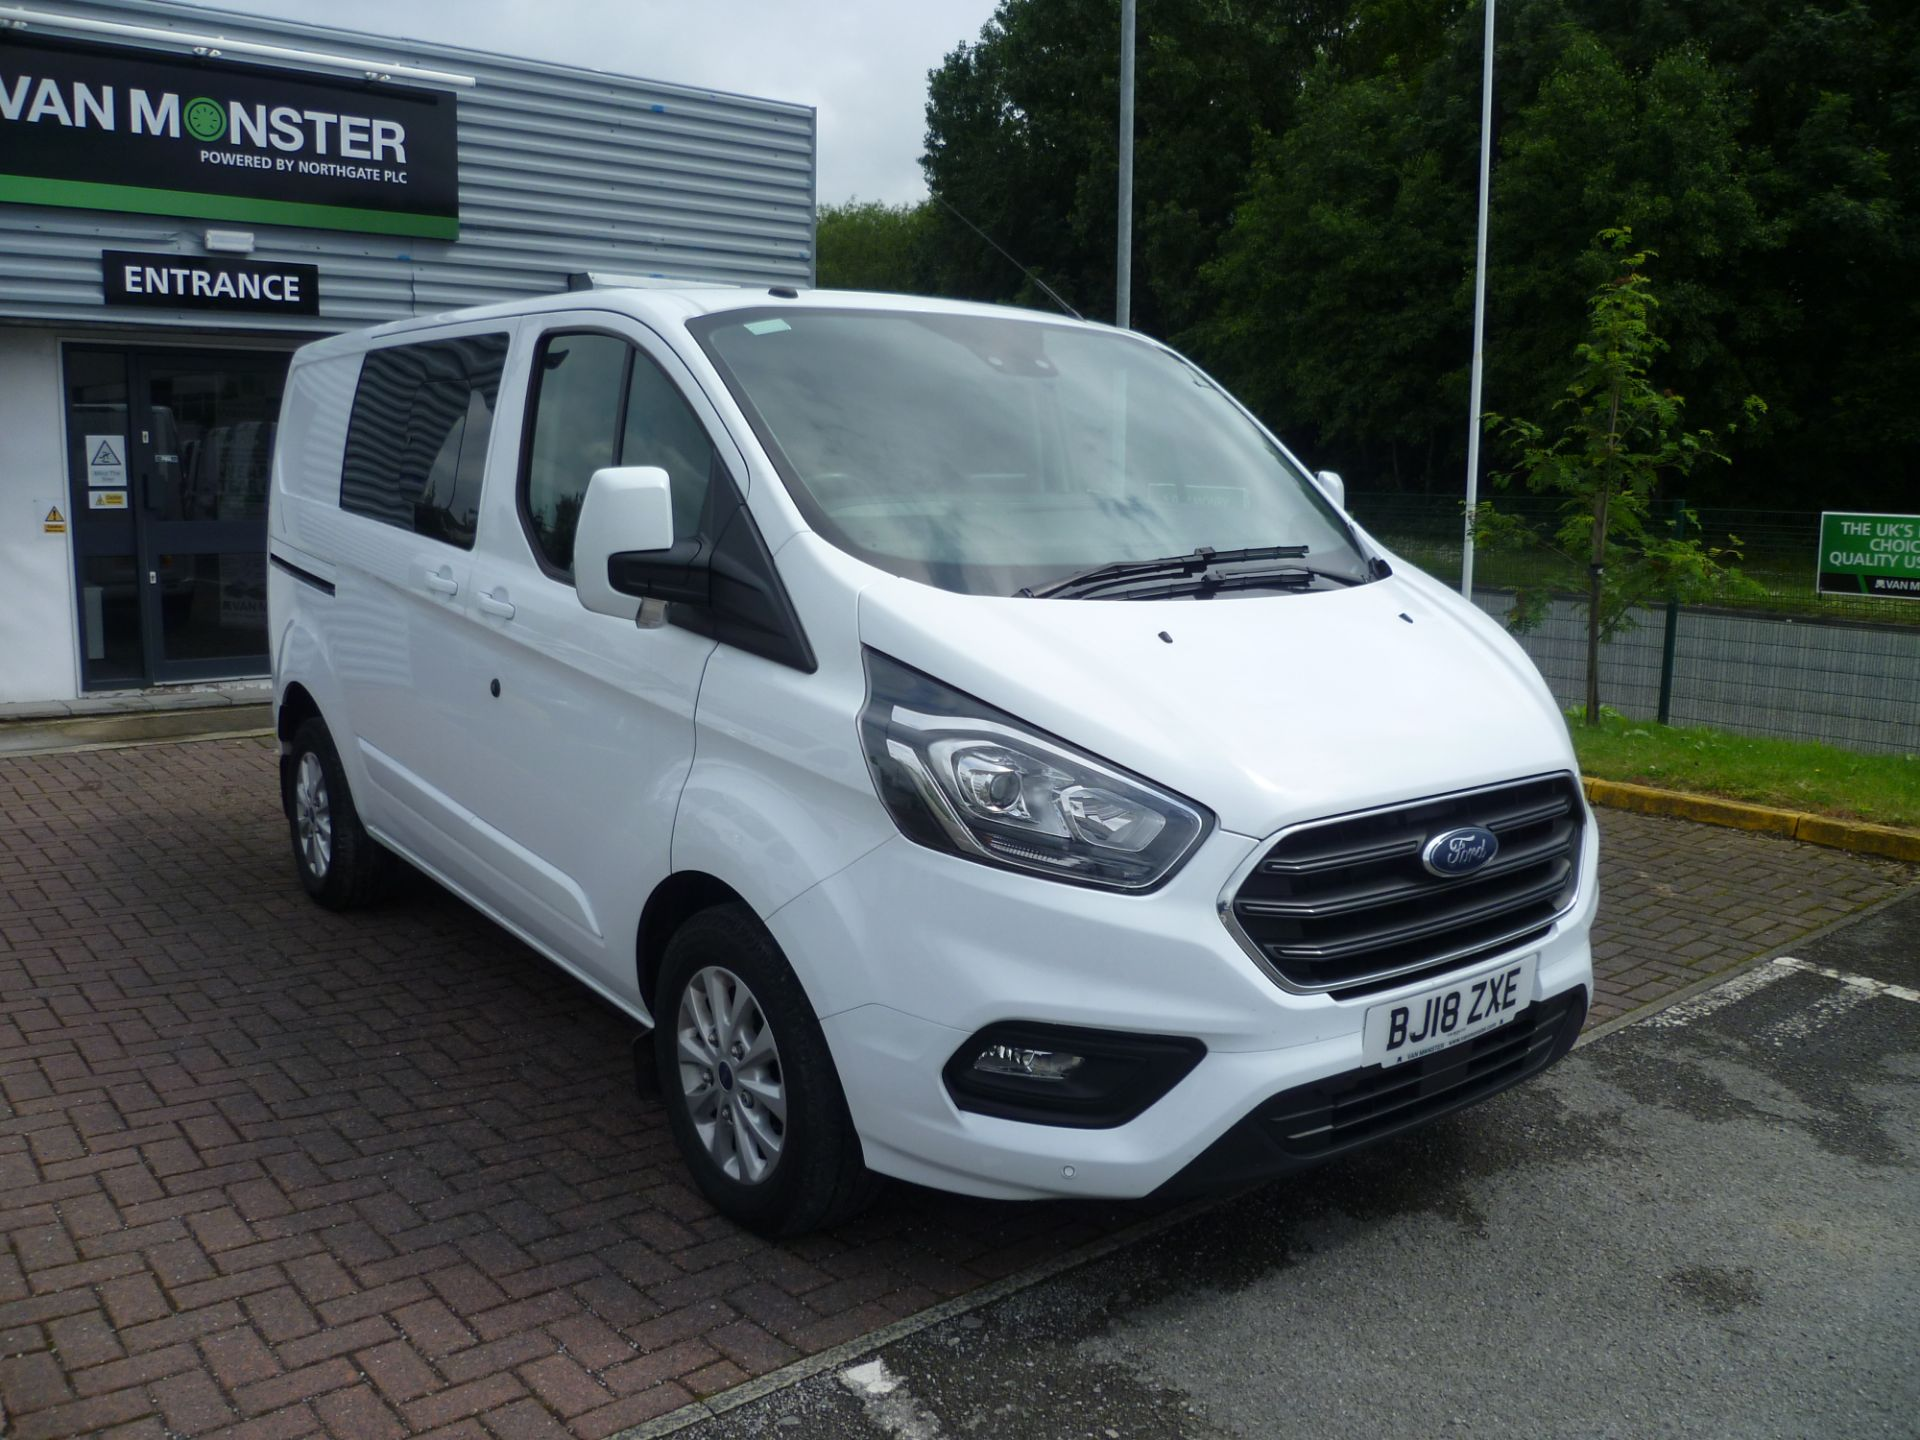 2018 Ford Transit Custom 320 L1 LOW ROOF 130PS LIMITED DOUBLE CAB (BJ18ZXE)